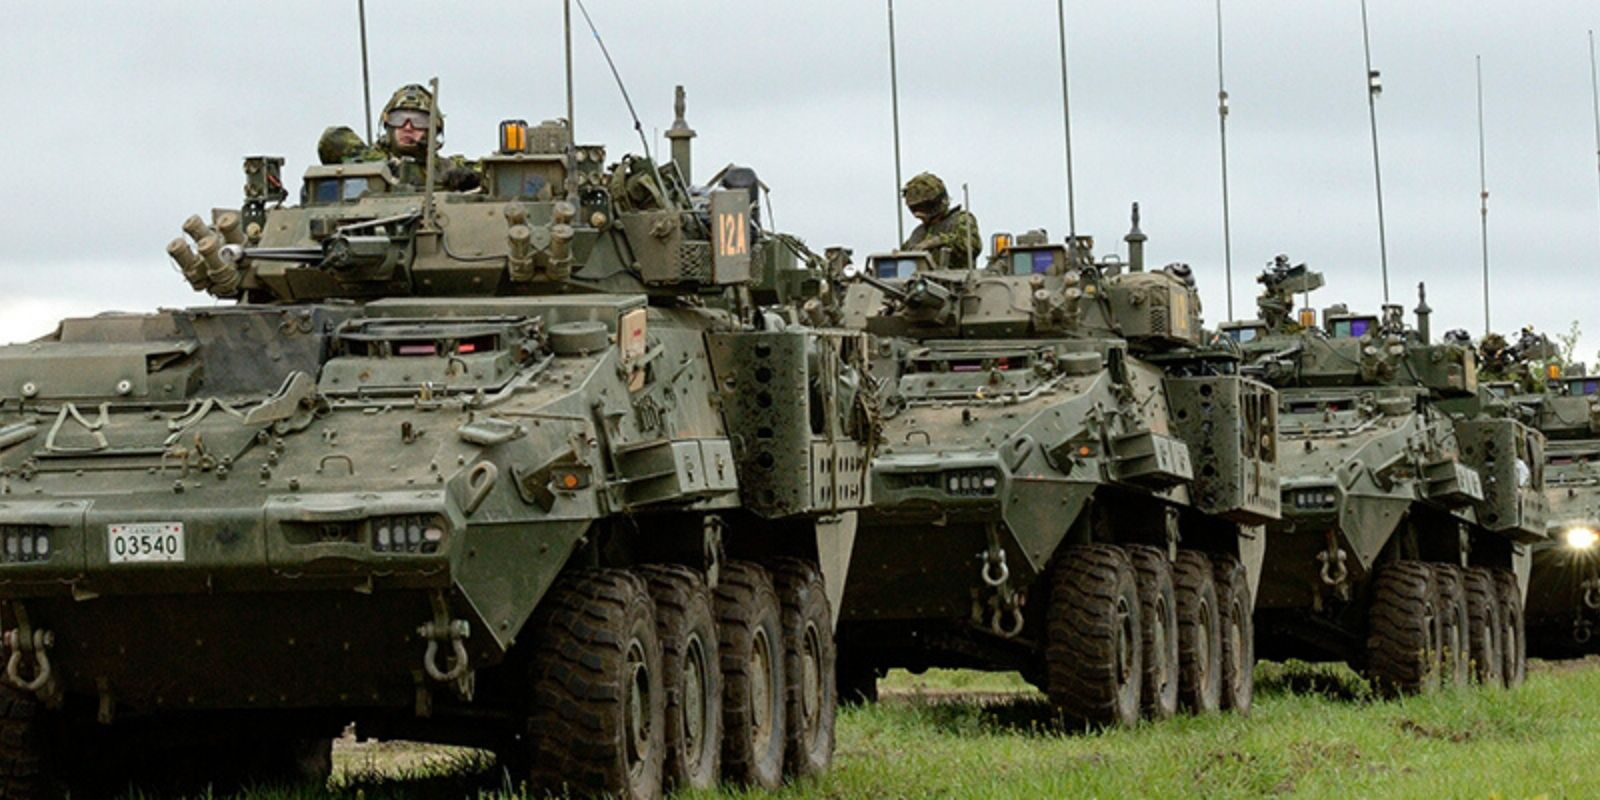 Saudi Arabia still owes Canada $3.4 billion in late payments for Canadian LAVs